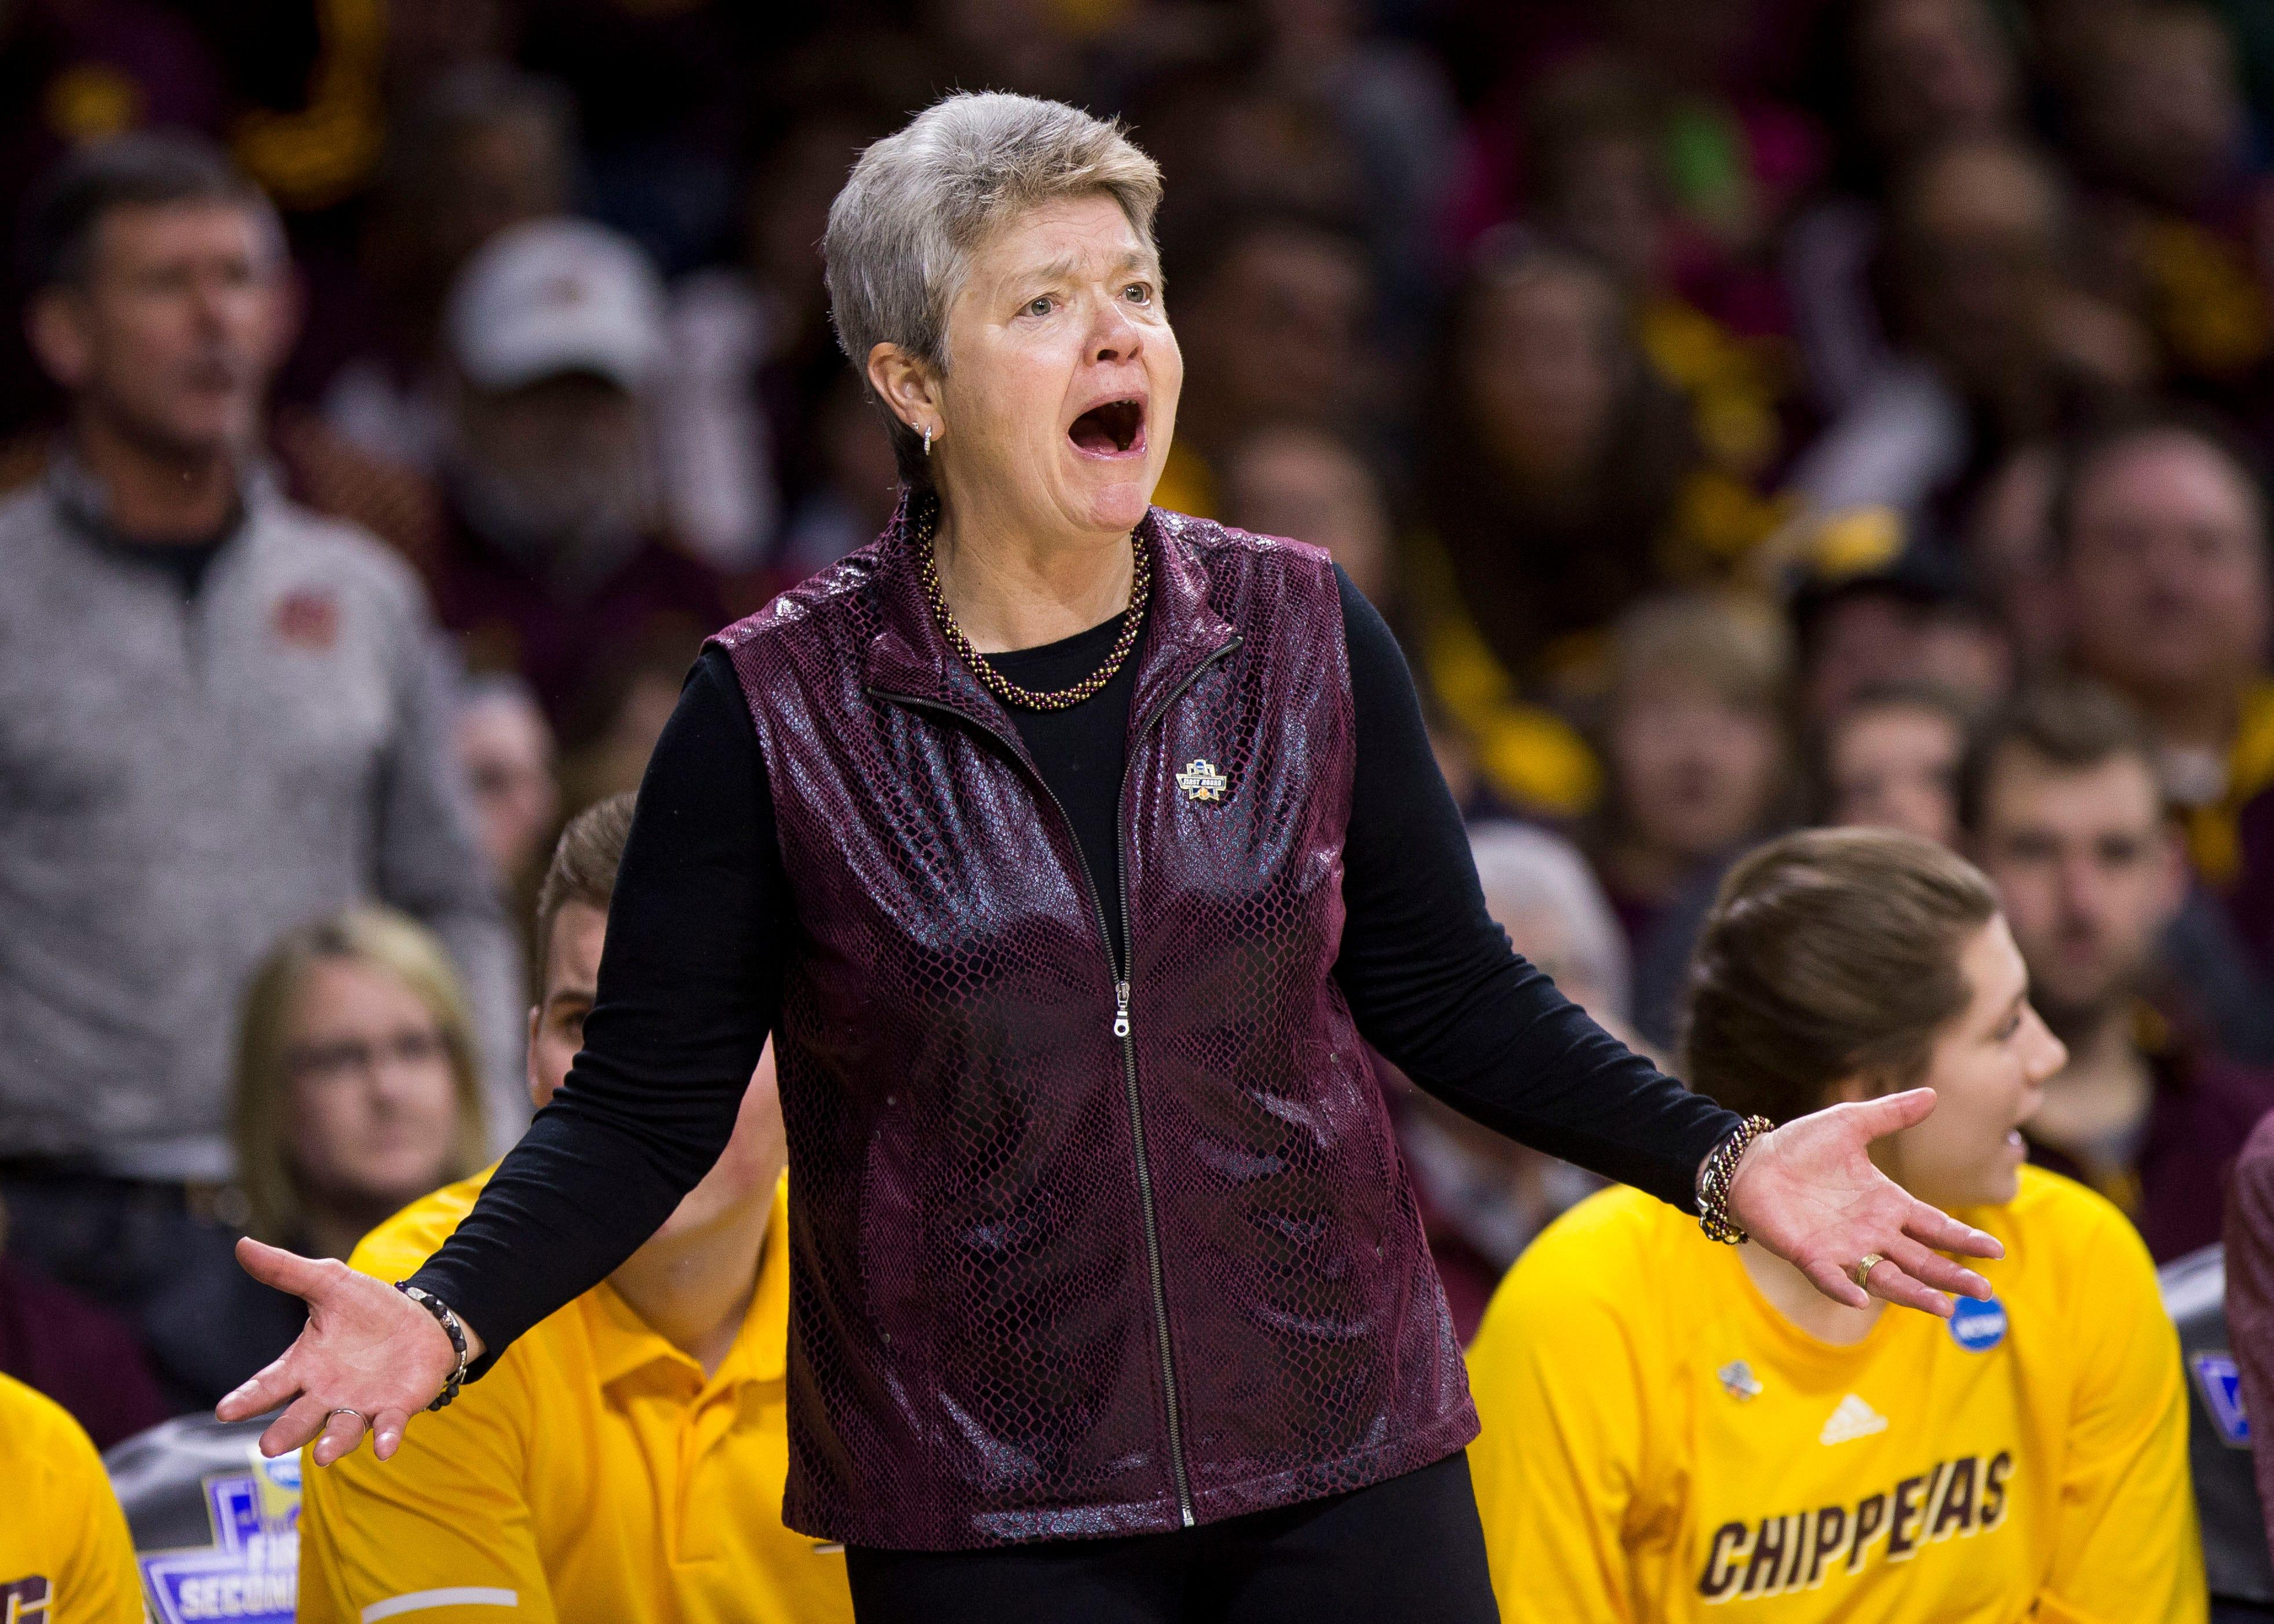 Central Michigan head coach Sue Guevara questions a call during a first-round game against Michigan State in the NCAA women's college basketball tournament in South Bend, Ind., Saturday, March 23, 2019. Michigan State won 88-87.